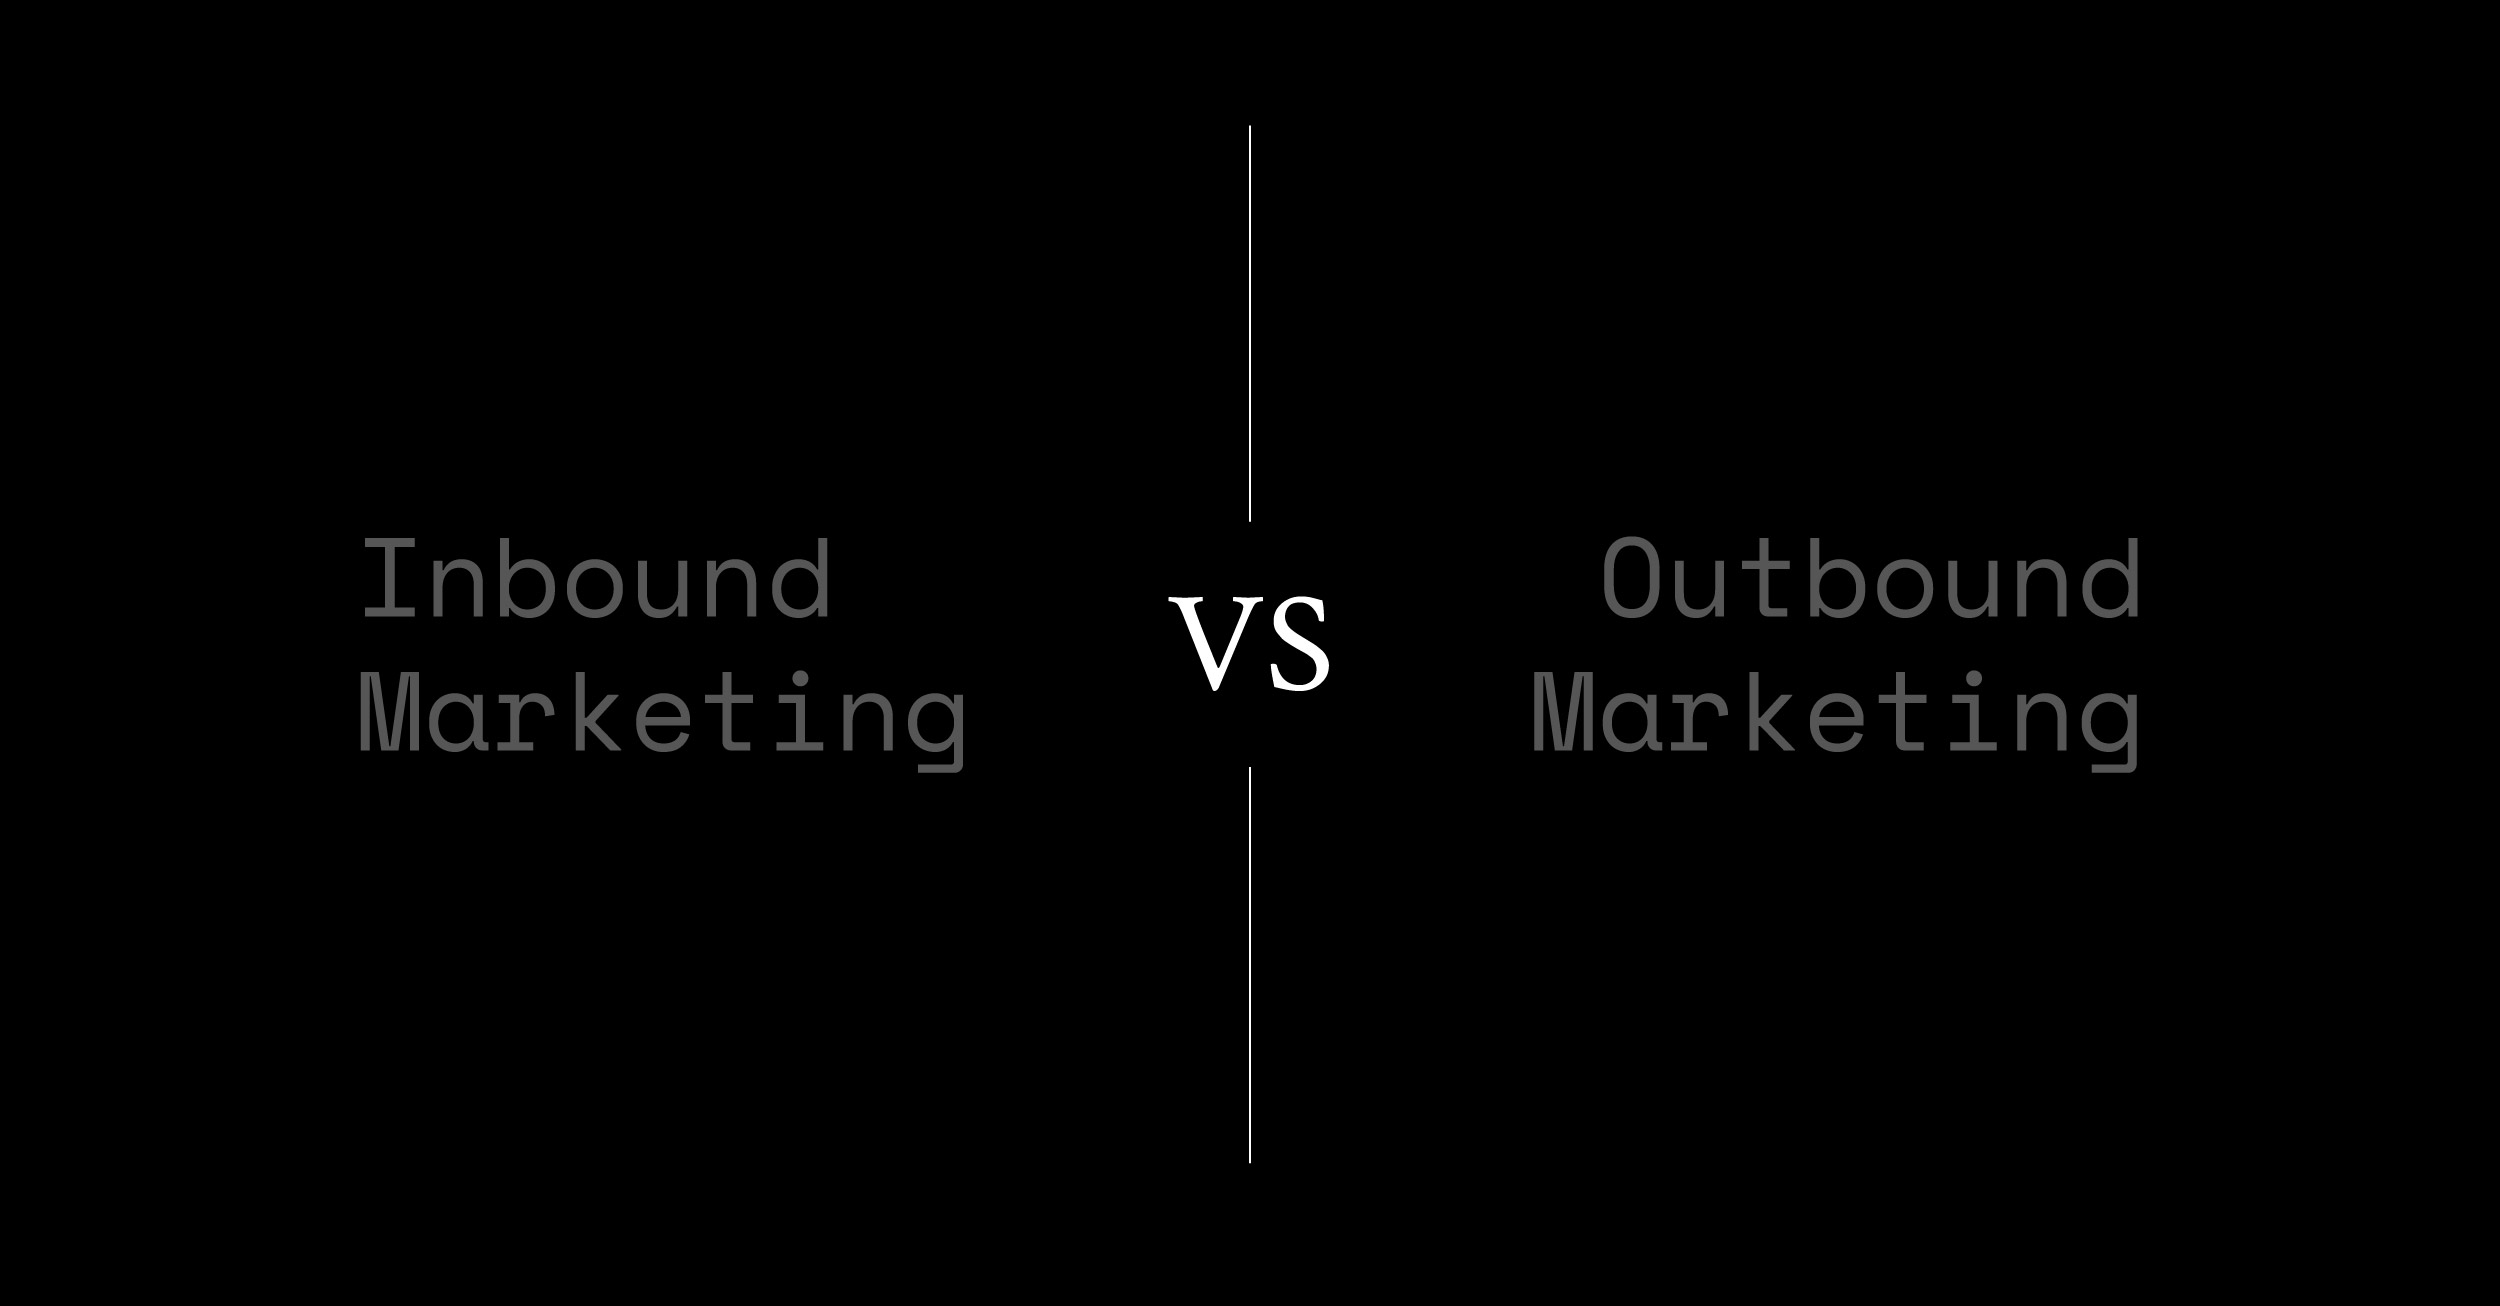 6 diferencias entre Inbound y Outbound marketing en Social Media